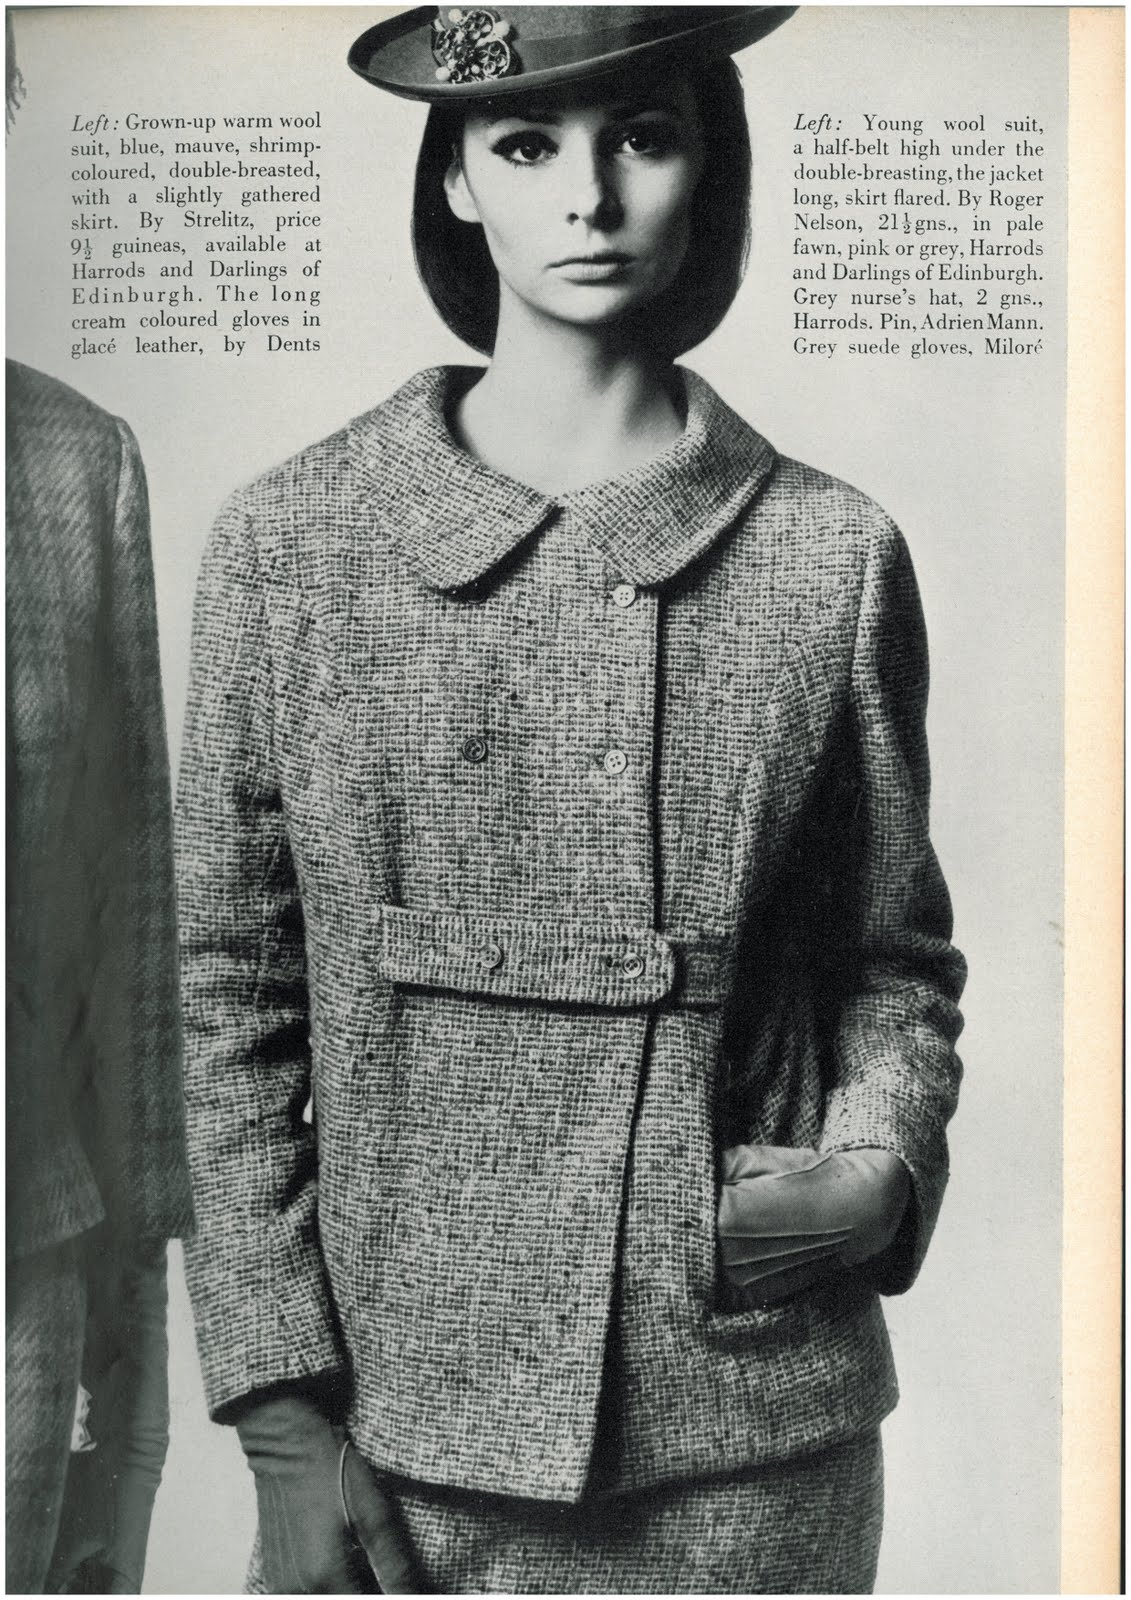 Youthquakers January 1st 1965 Uk Vogue